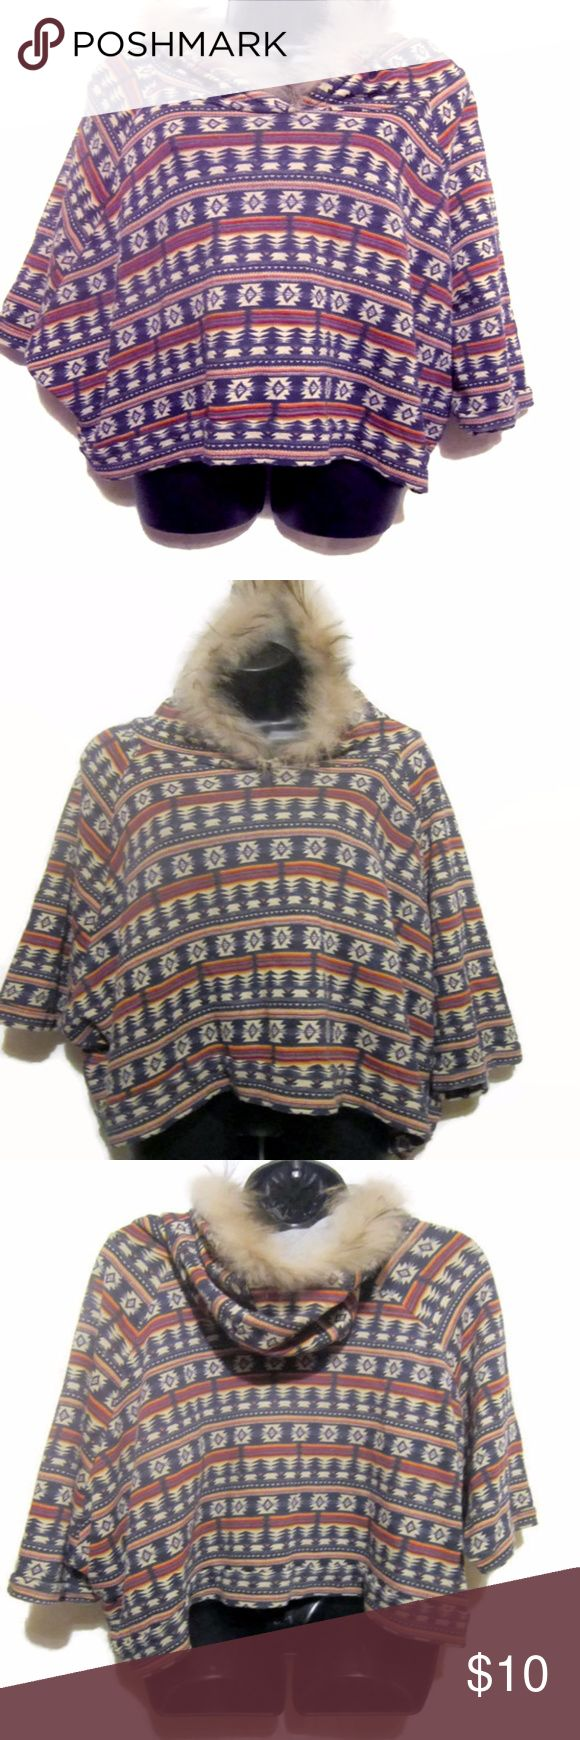 "Southwest Aztec Hooded Poncho Cute Poncho   Crop Length  Cotton Blend  Hooded  Super Soft Faux Fur Trim on Hoodie  Pullover Poncho  Southwest Aztec  Women's Size Petite Small Armpit to Armpit 25"" Length Shoulder to Hem 21""  Excellent Pre-Owned   Unique Southwest Poncho!!   Smoke Free Environment XXI Jackets & Coats Capes"